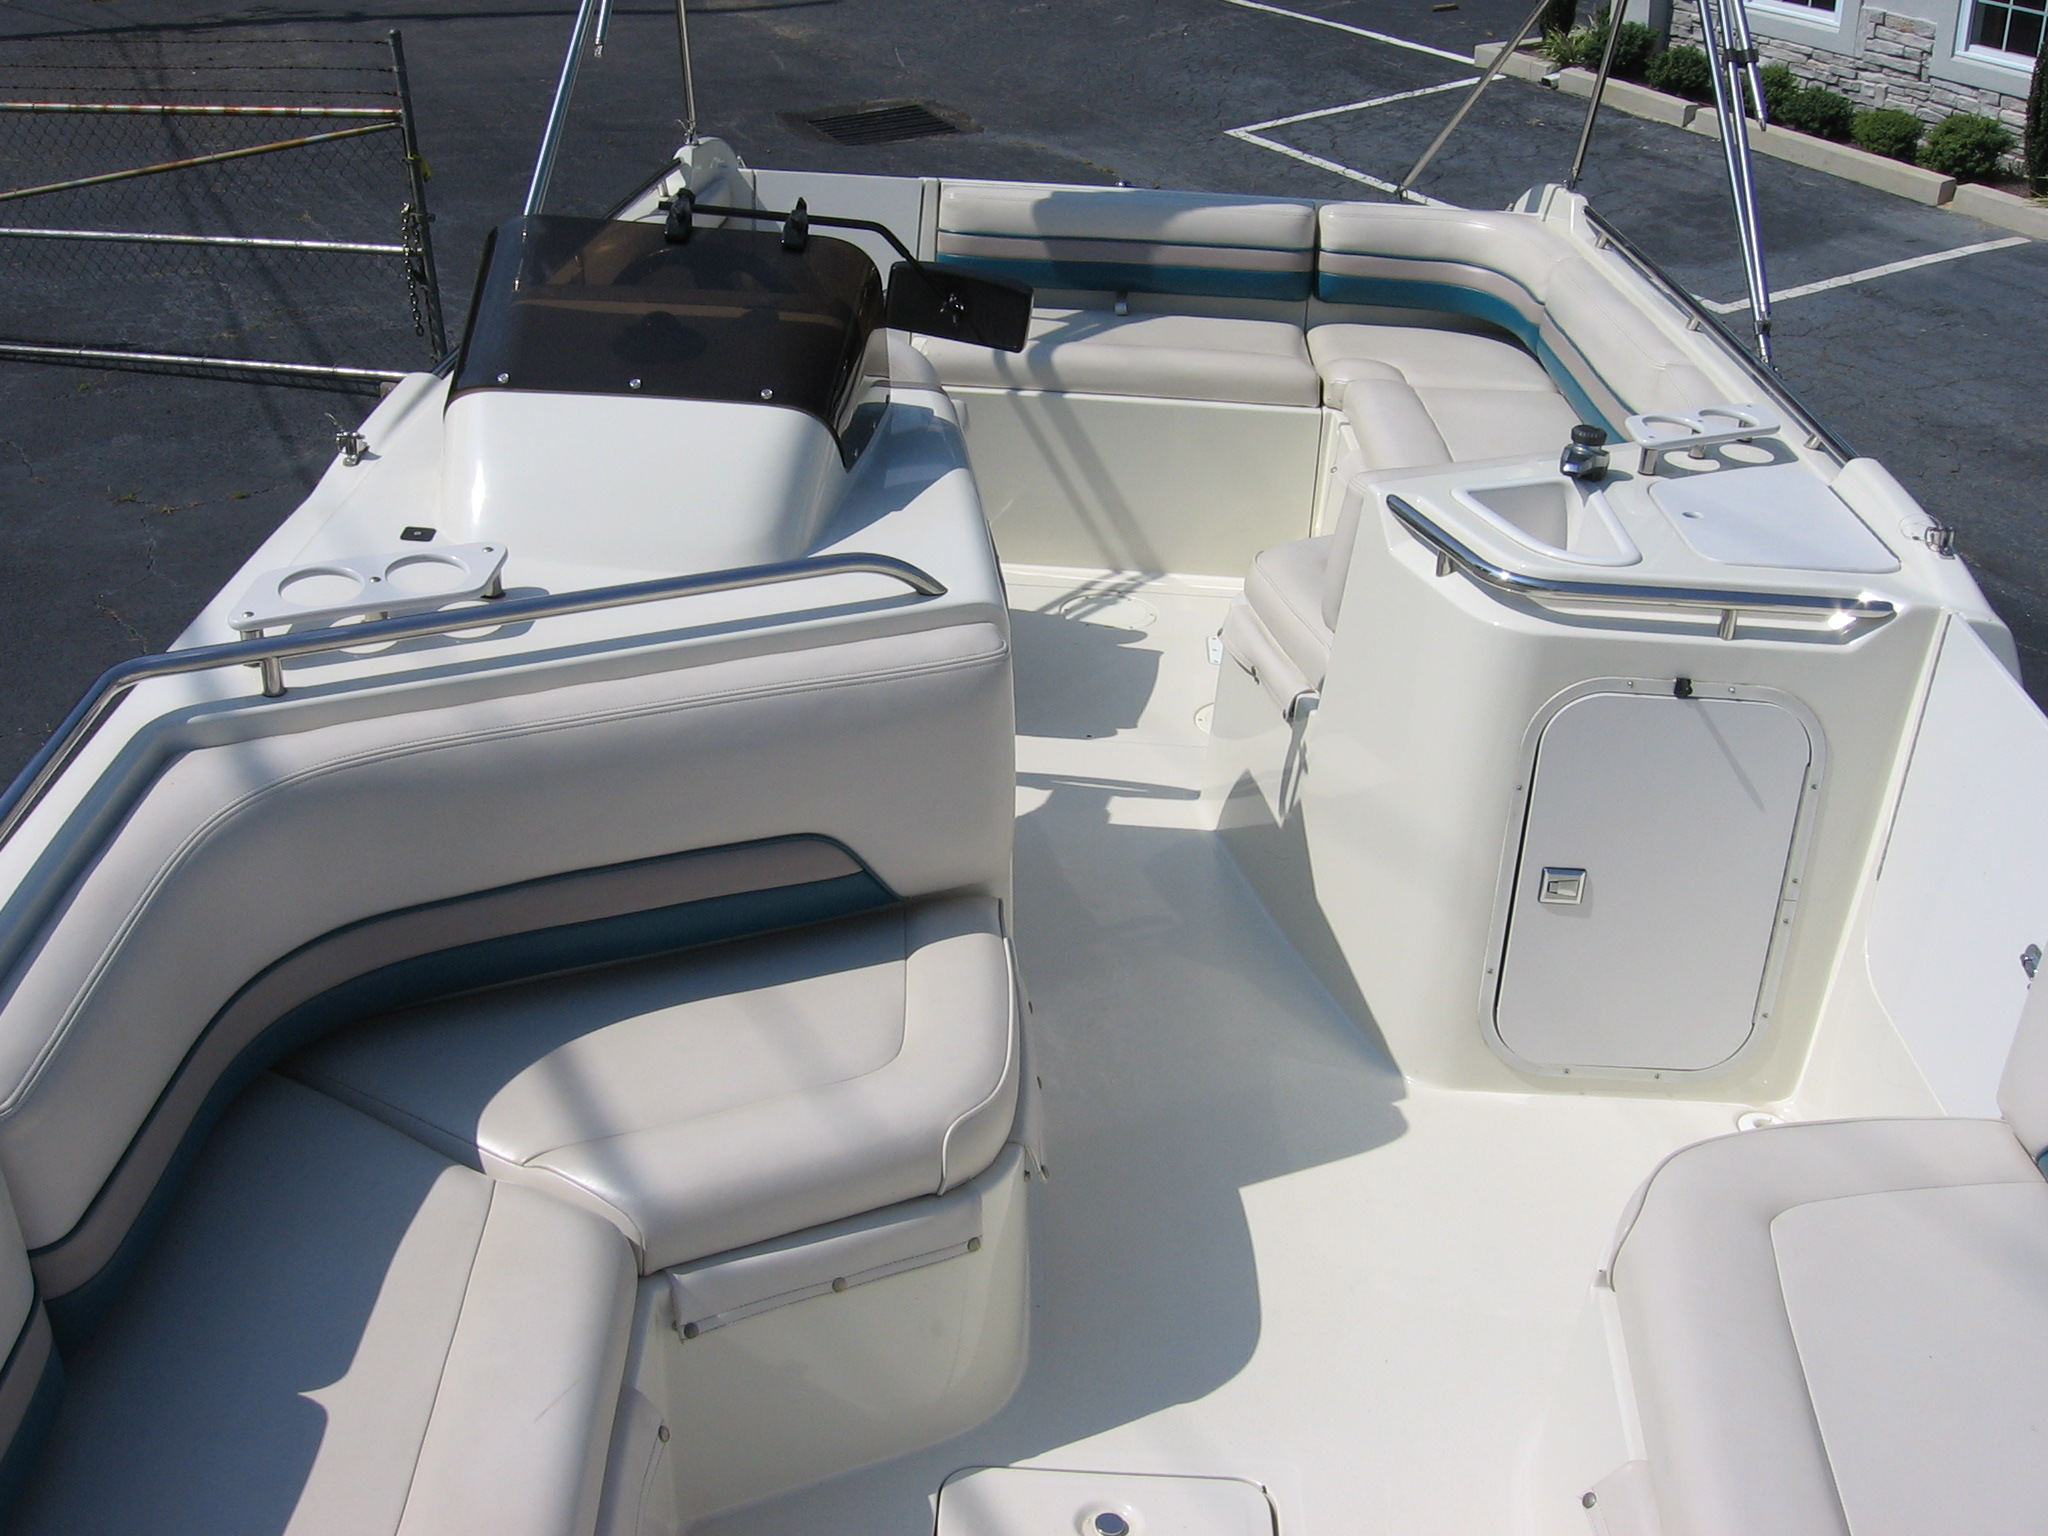 1995 Chaparral Sunesta 220 22 Deck Boat Used Good